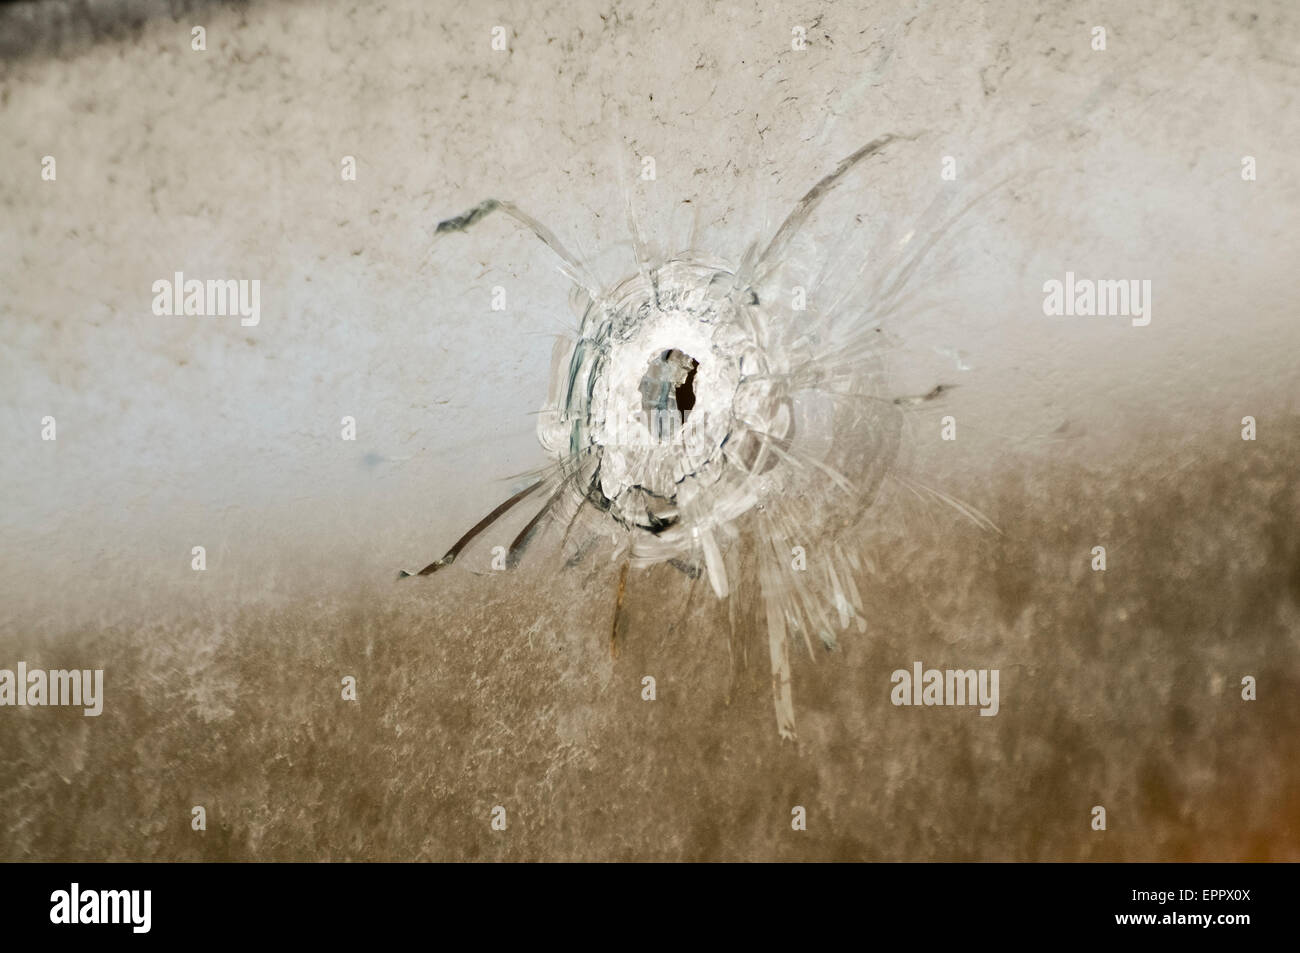 Bullet hole left in a window after a gun attack on a house - Stock Image